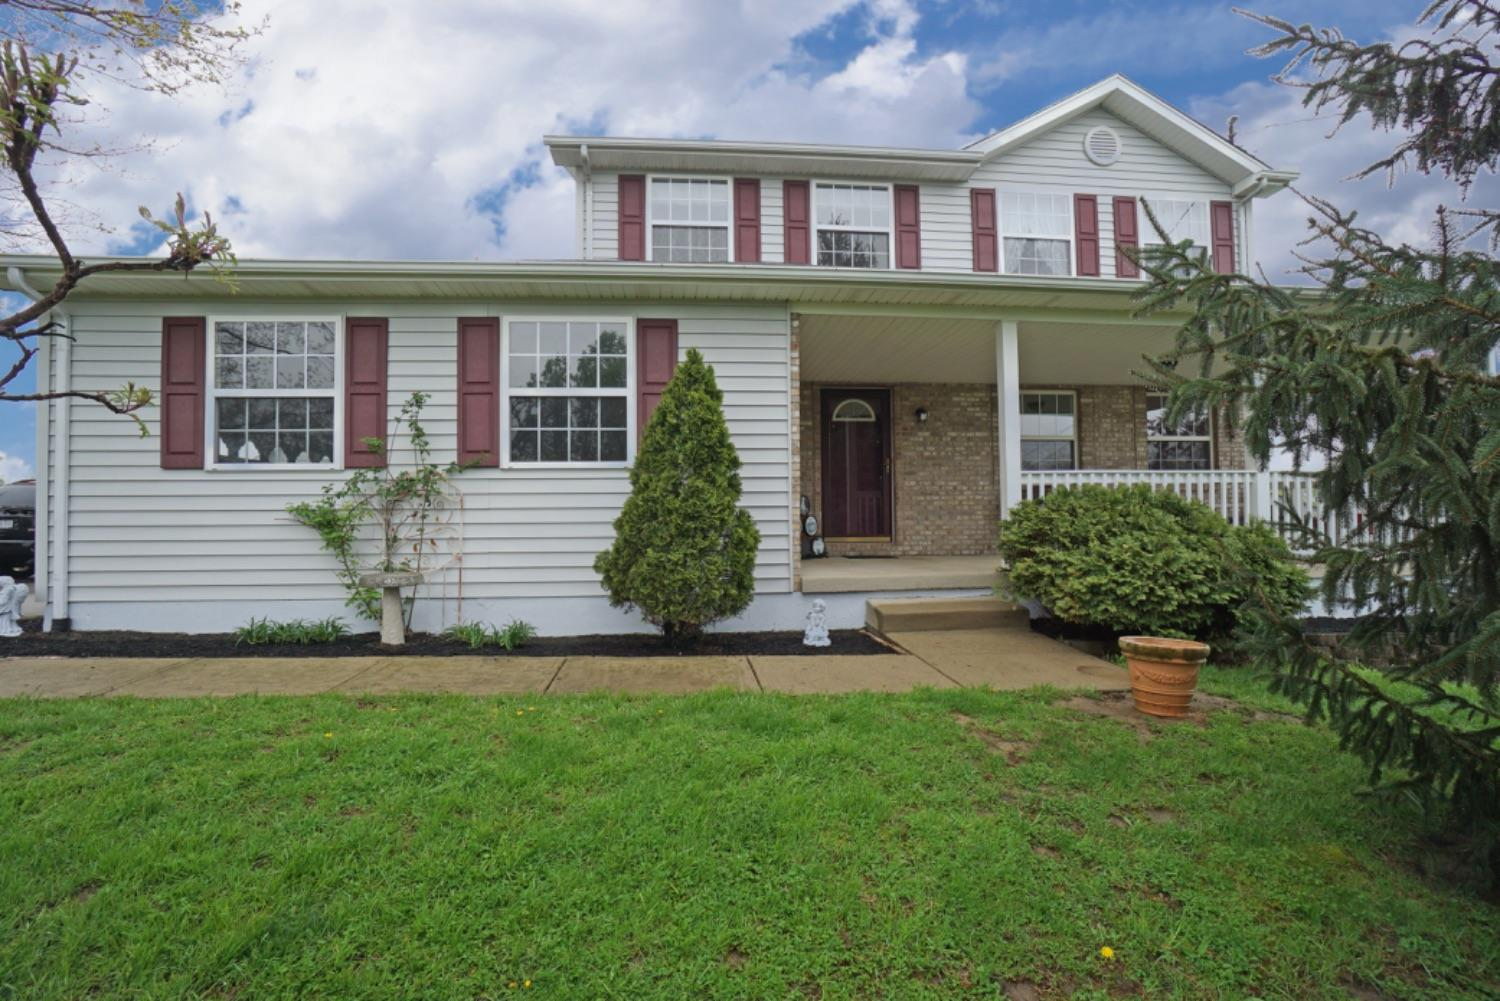 2284 W Elkton Rd St. Clair Twp., OH